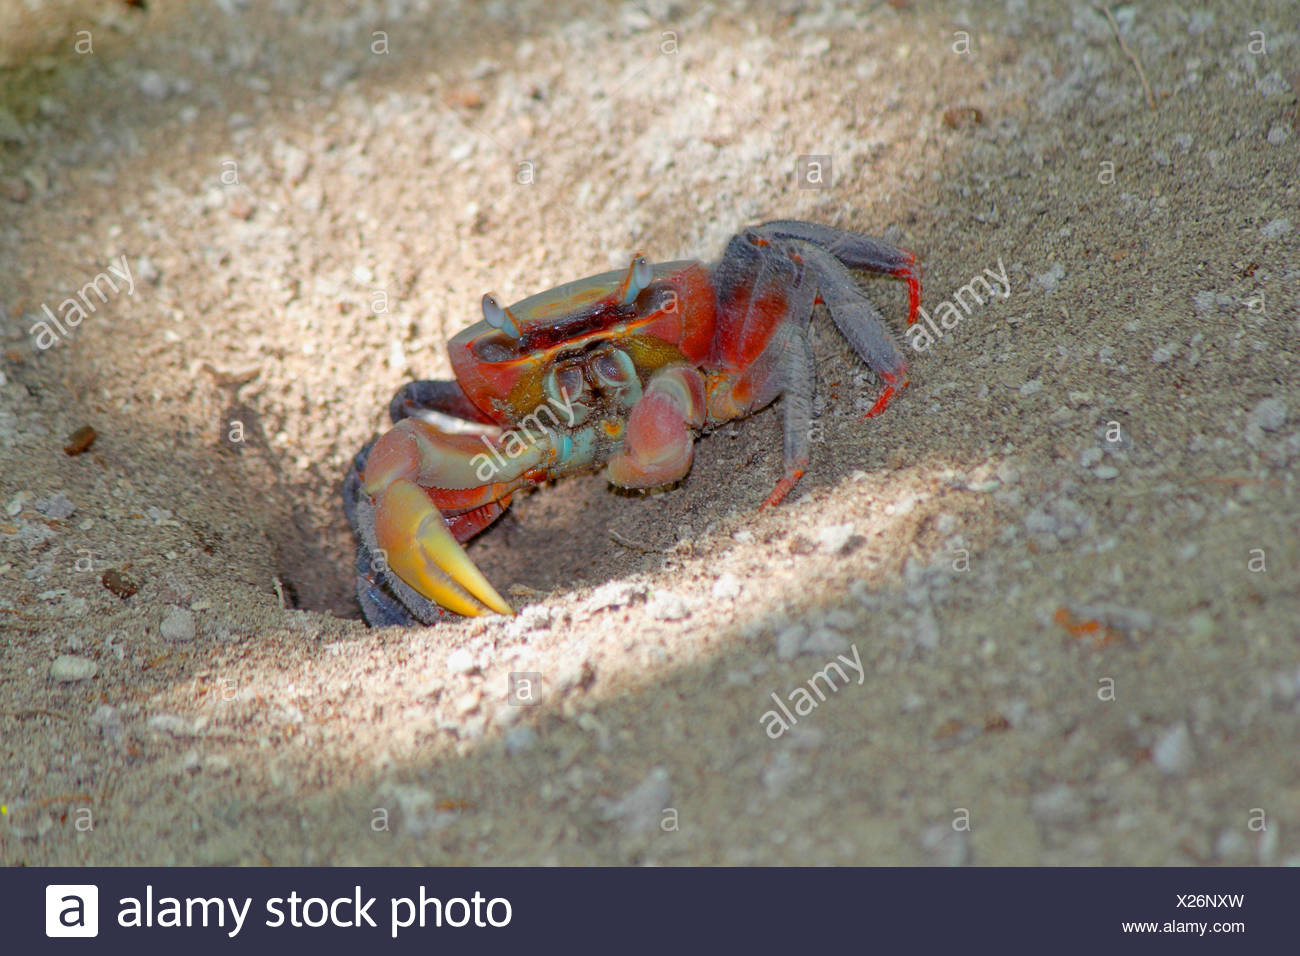 Red Claw Crab, Land crab (Cardisoma carnifex), animal at the entrance to the cave, Seychelles, Praslin - Stock Image